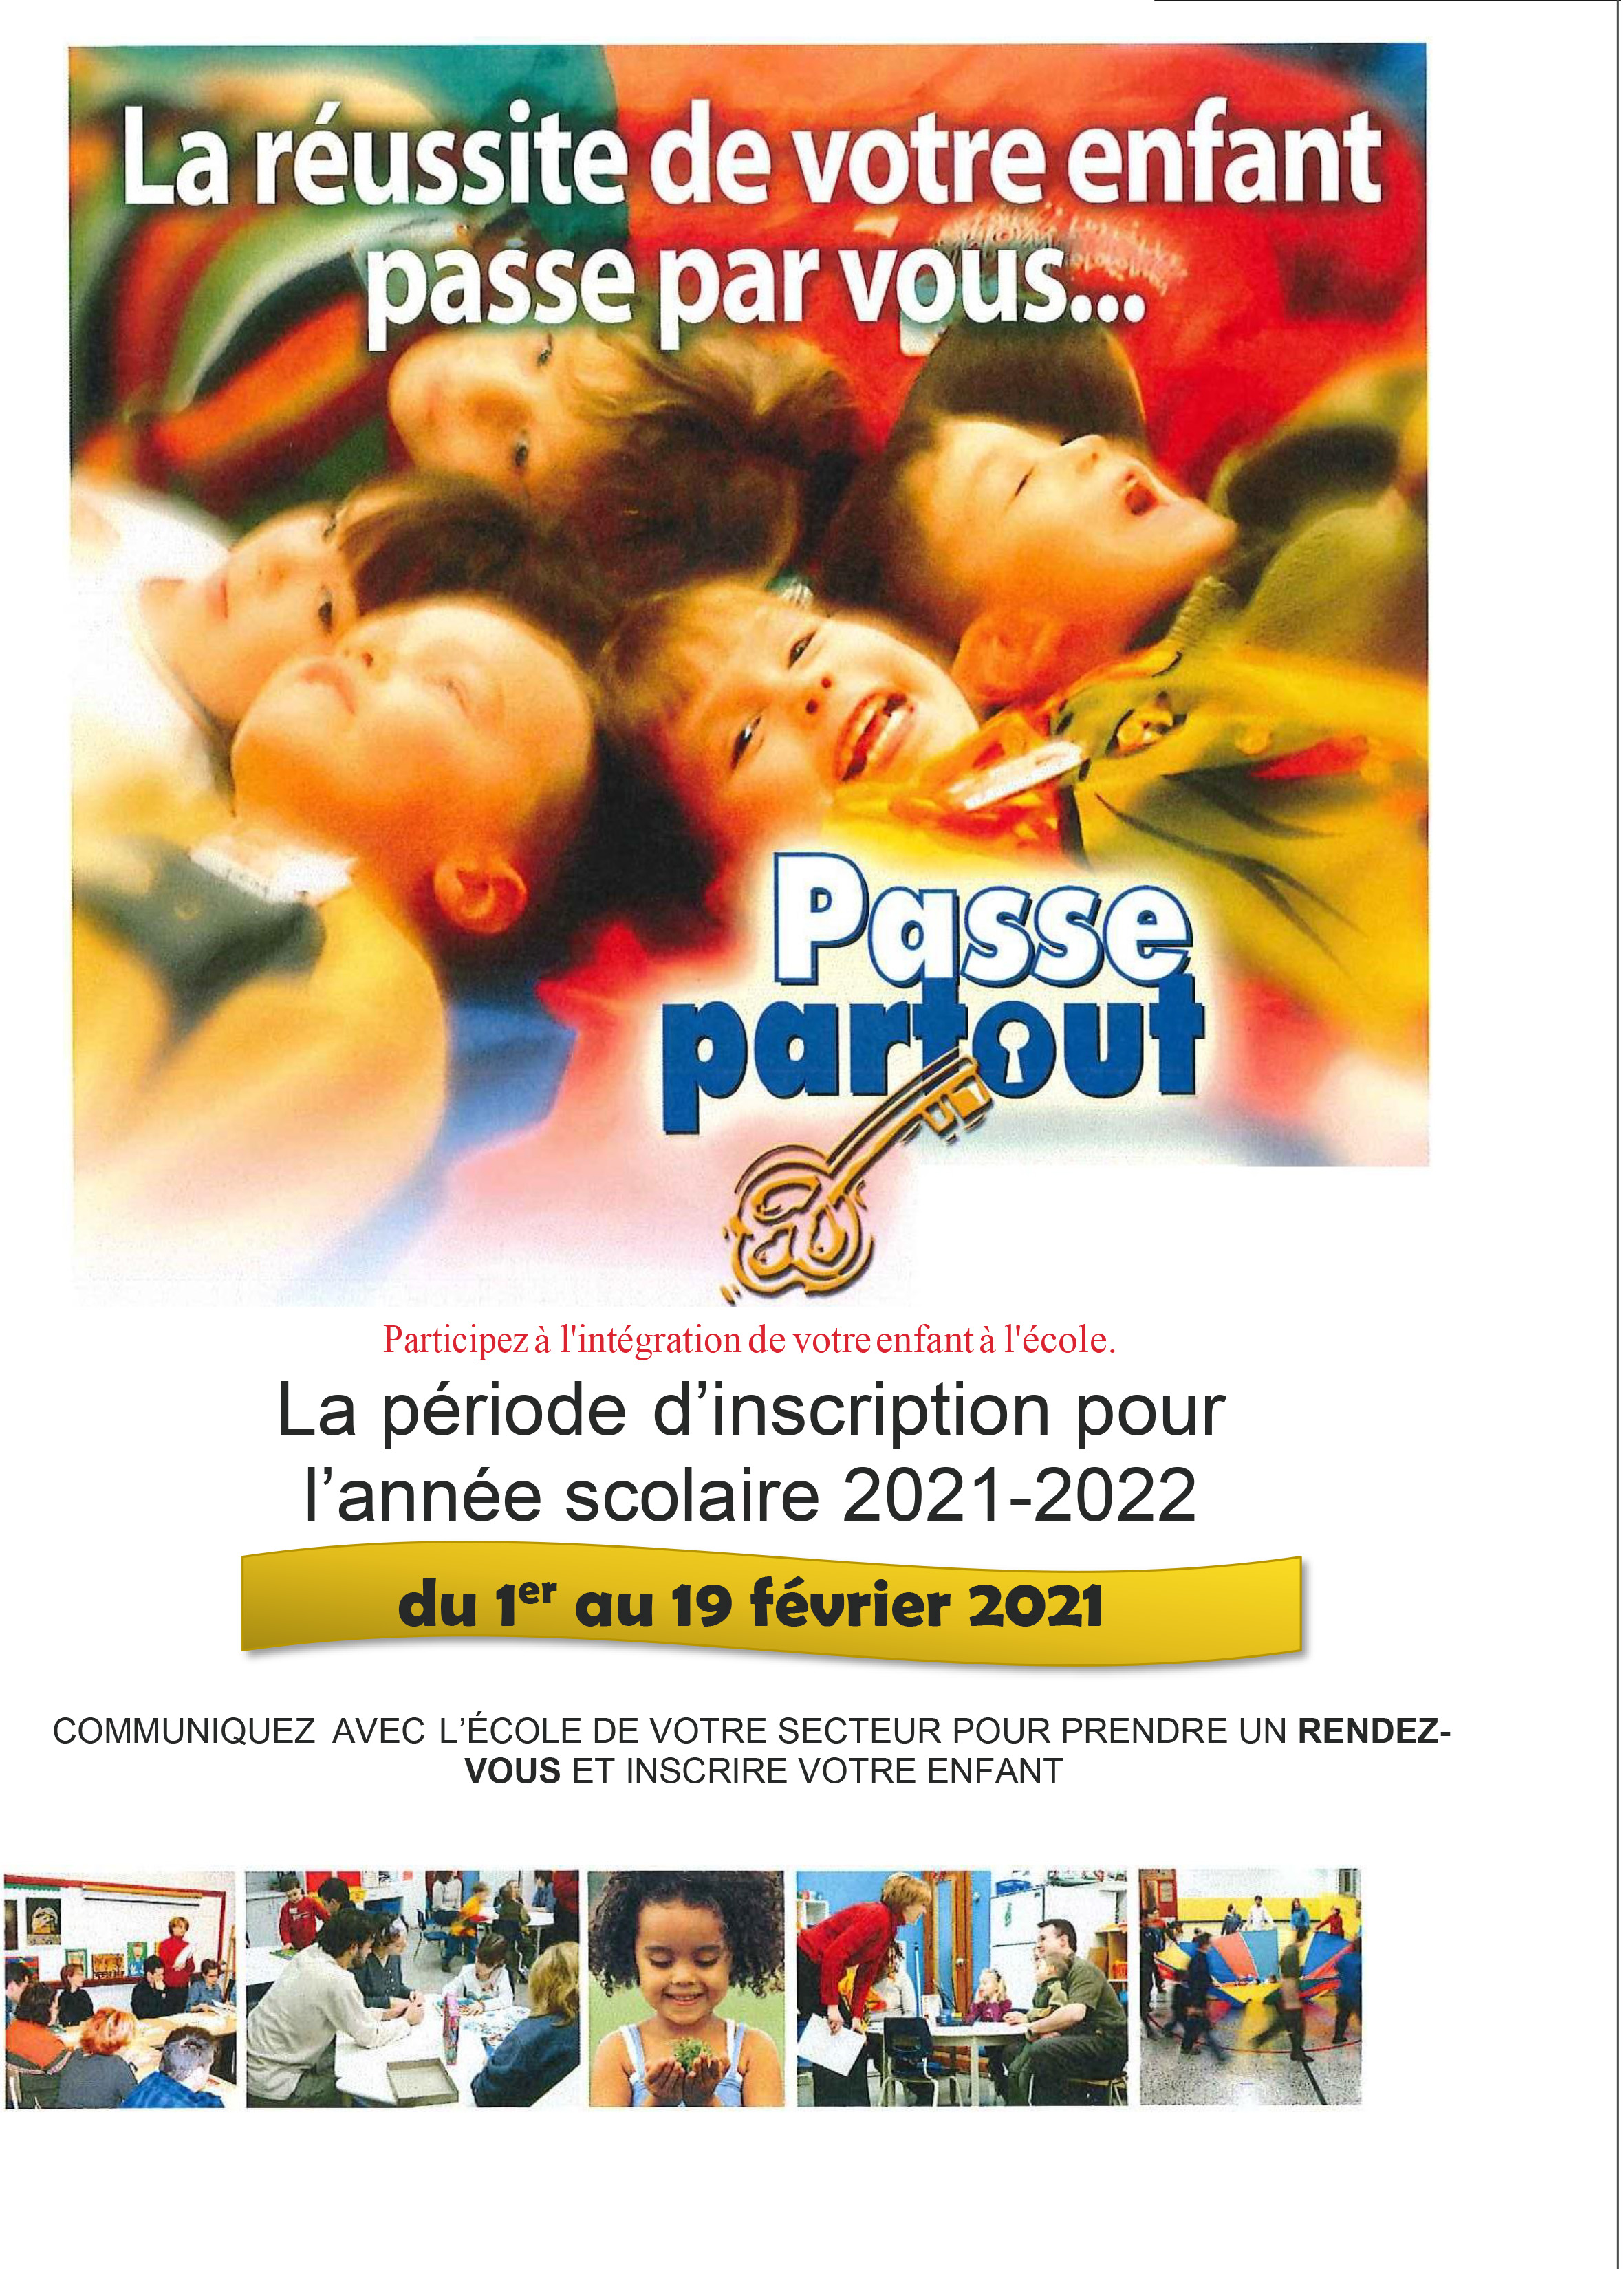 Priode dinscription Passe Partout 2021 01 21